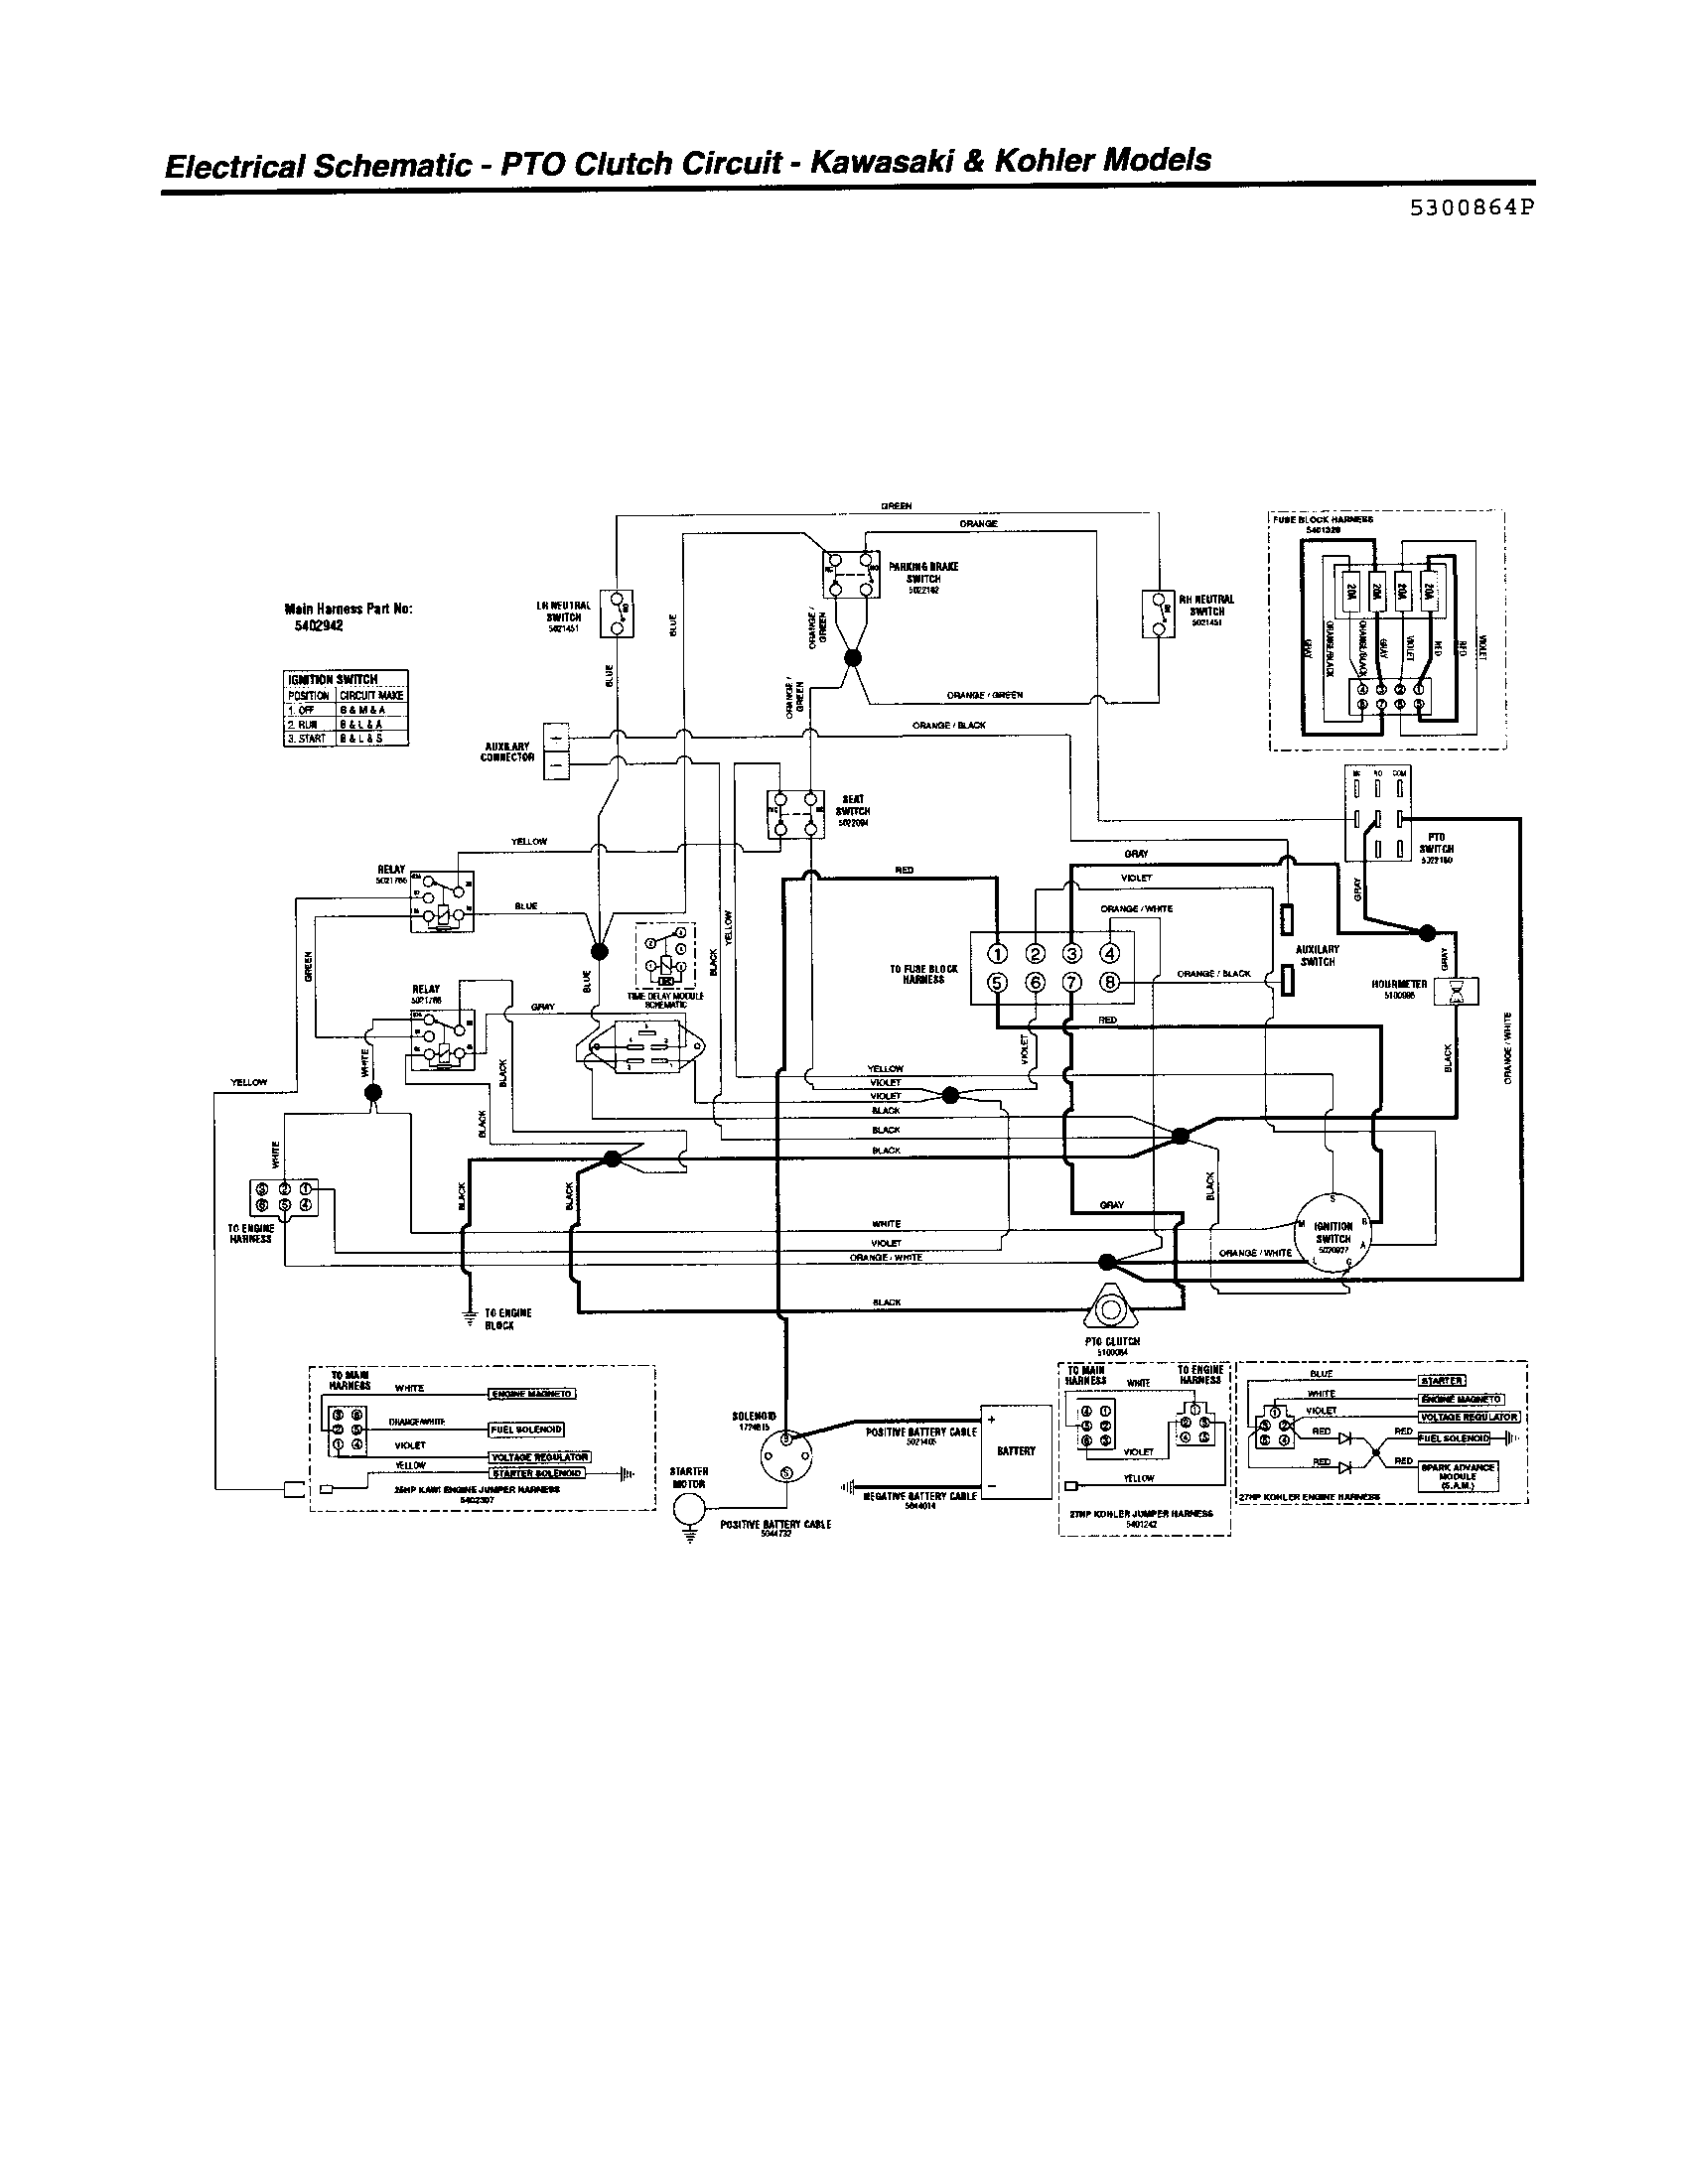 edd203c96939fe65be99faf05b27f9f2 country clipper jazee mowers wiring diagrams country clipper craftsman riding mower wiring schematic at eliteediting.co